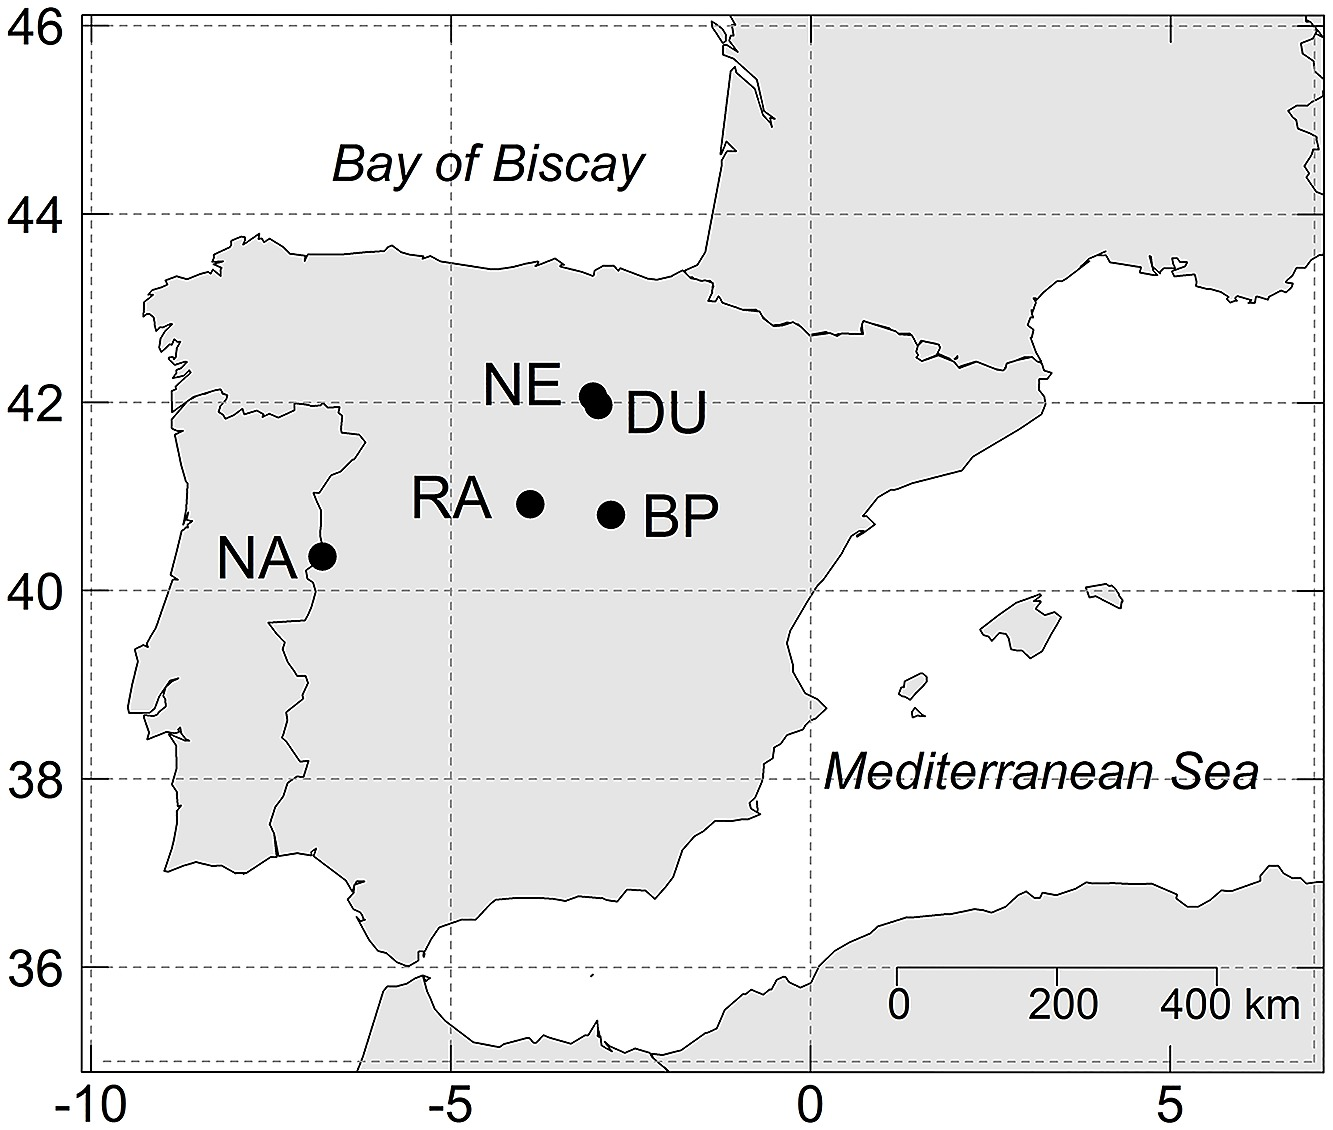 Image of: Map Of The Iberian Peninsula With The Location Of The Study Sites